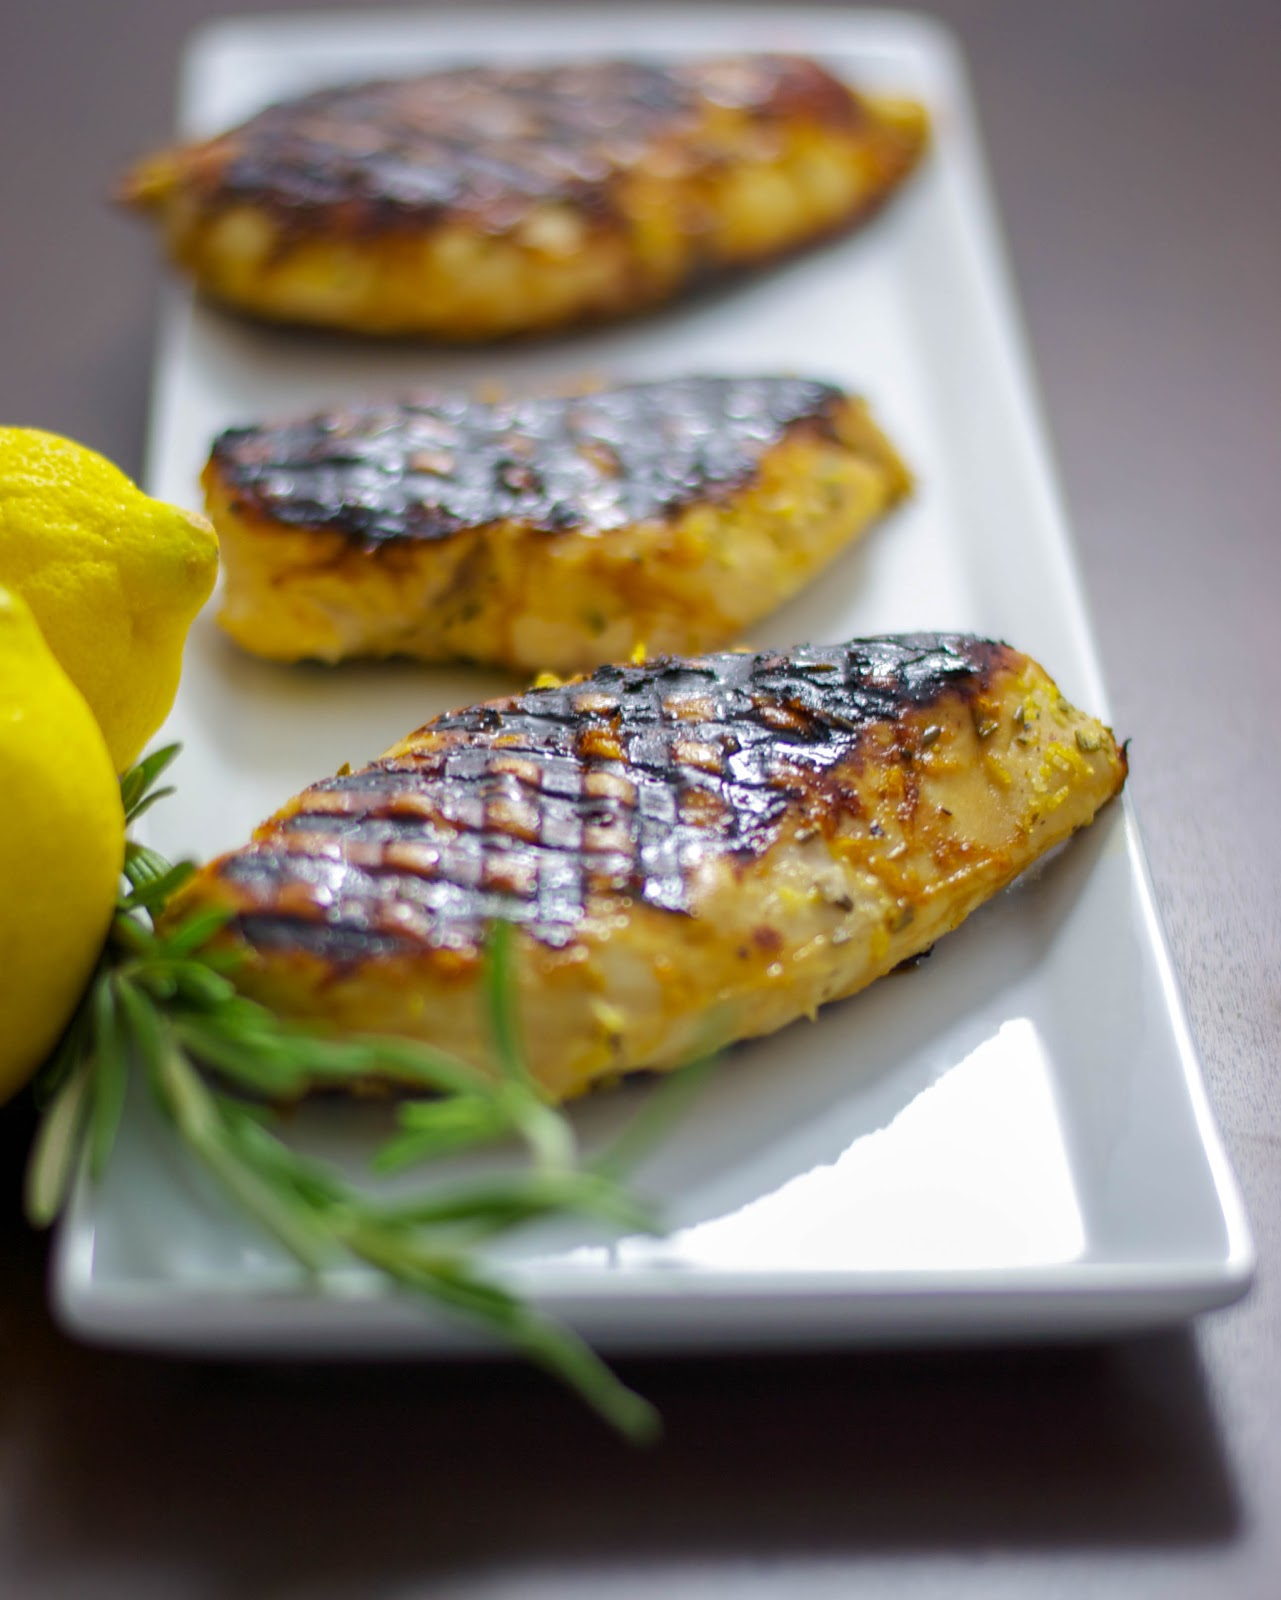 How Many Calories Are In A 6 Oz Grilled Chicken Breast